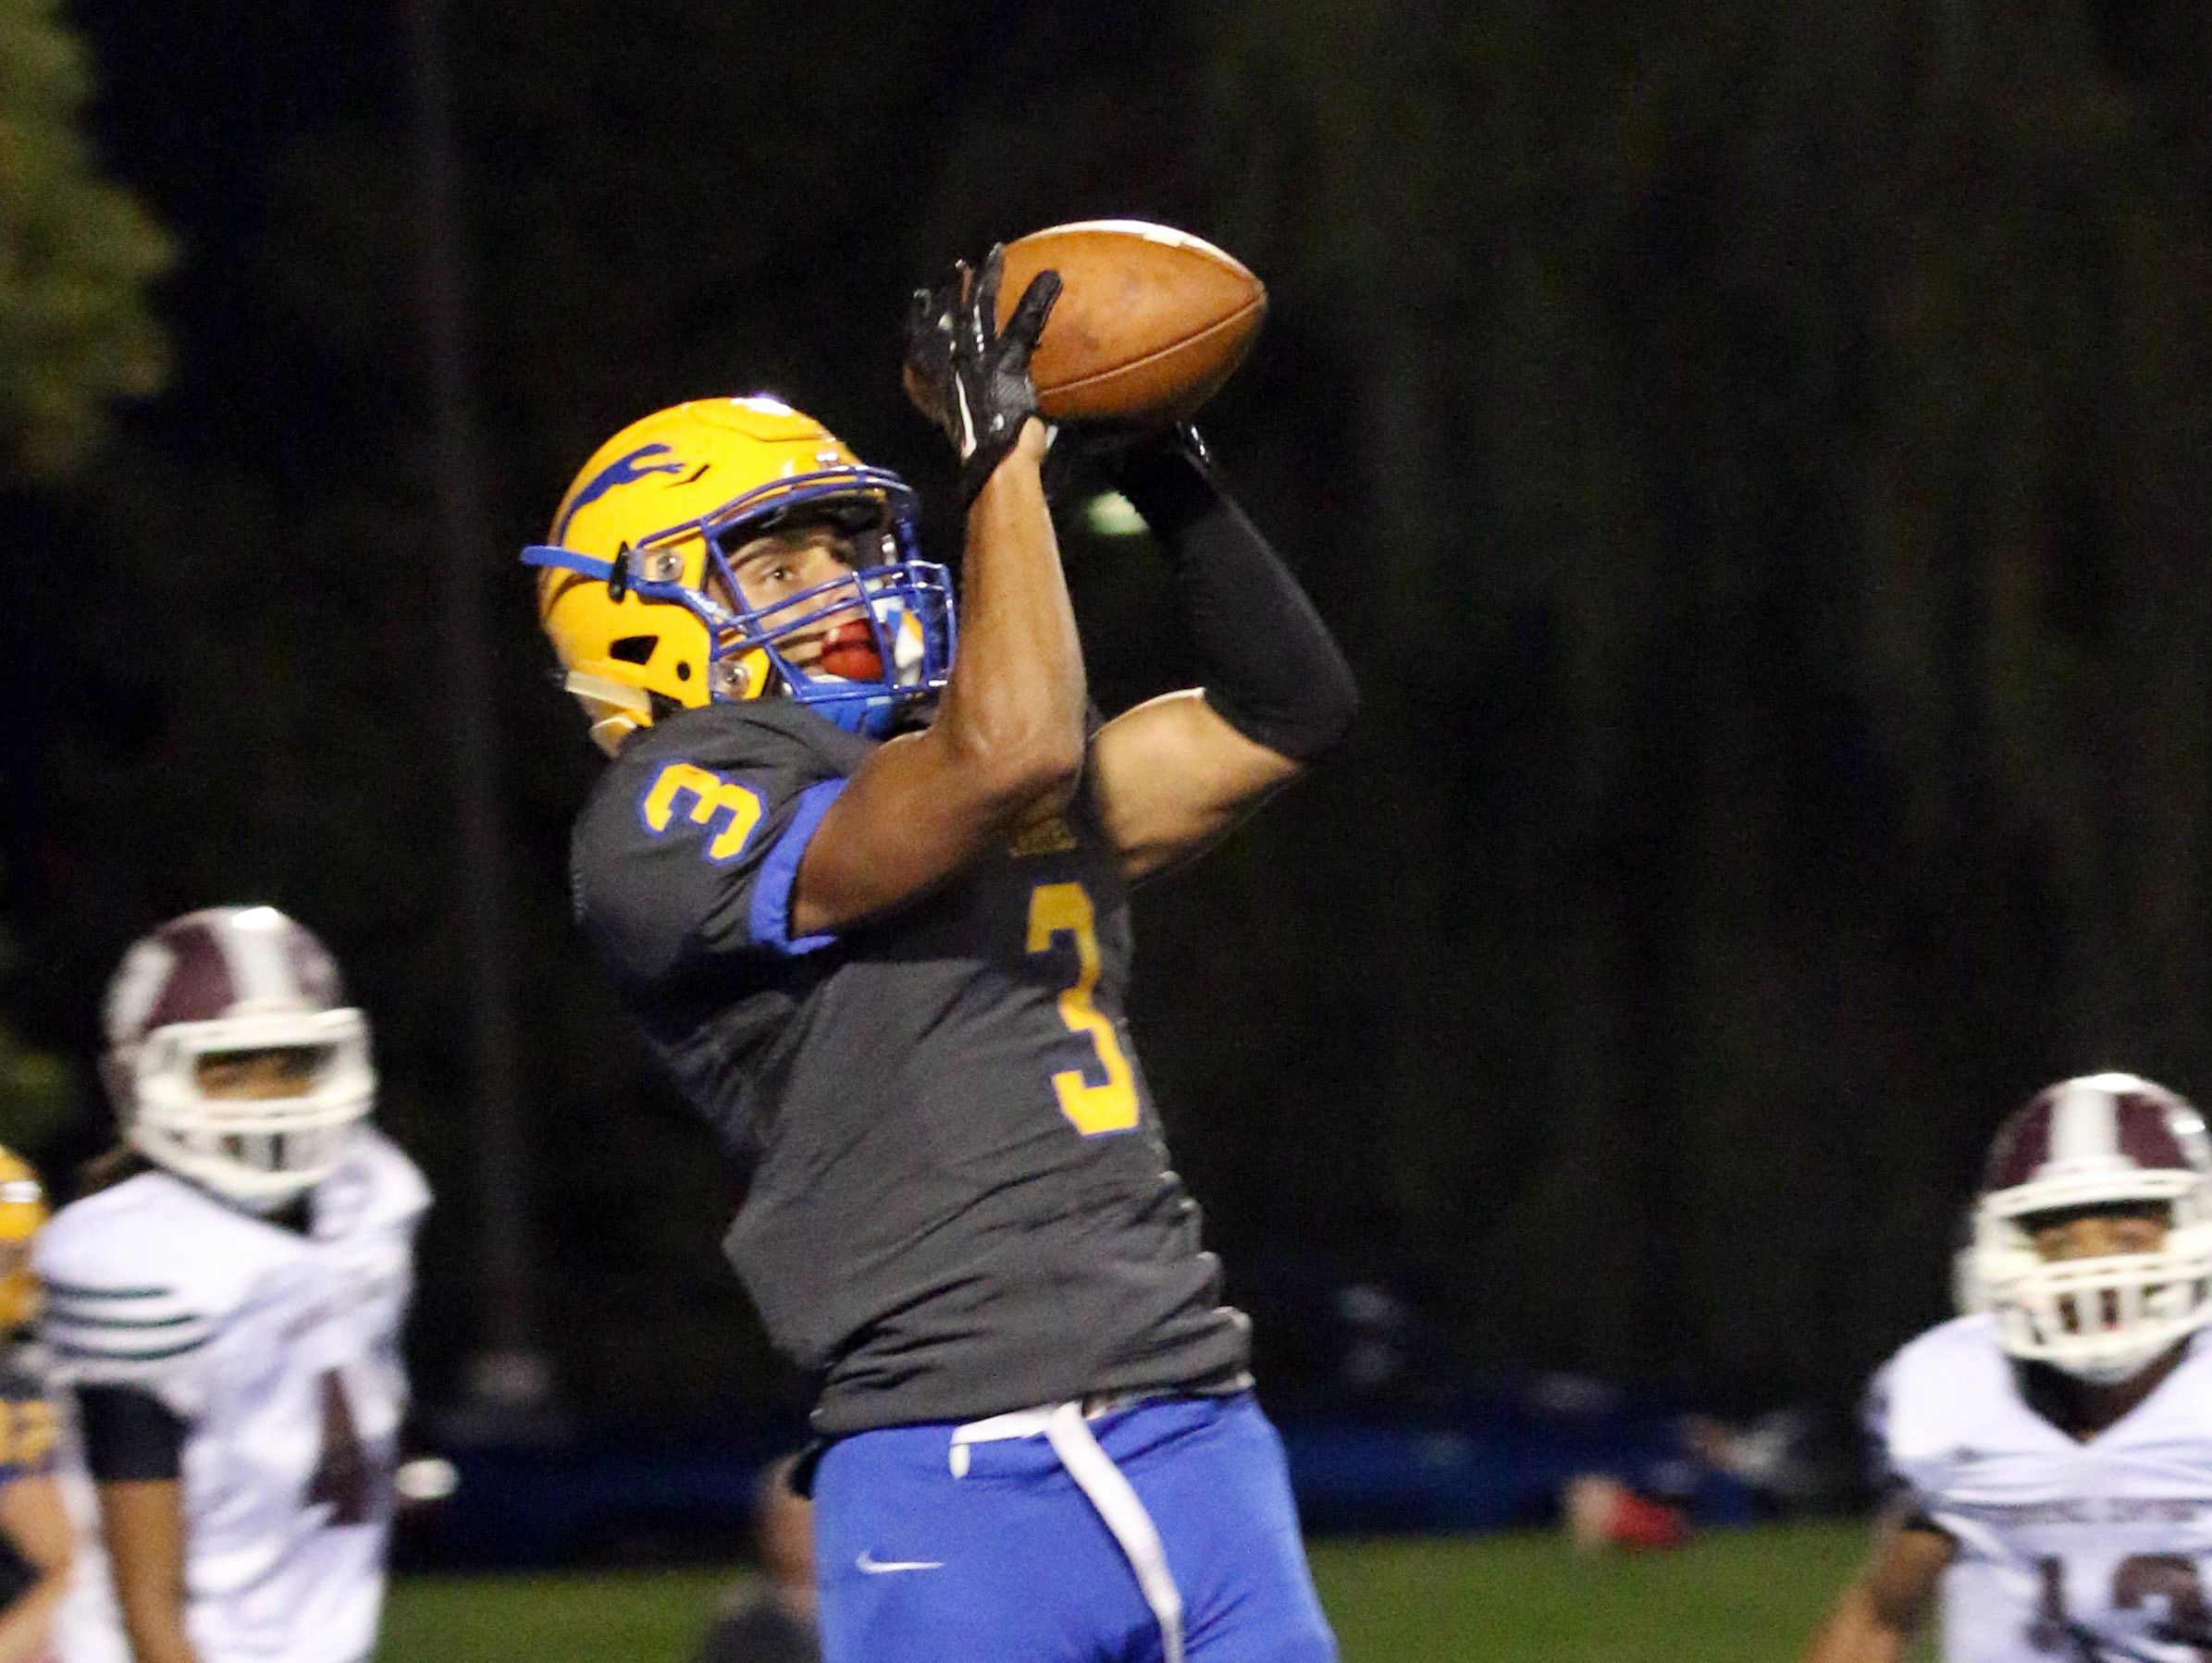 Carmel's Jalen Walker caught a school-record four touchdown passes in the Greyhounds 35-20 win on Friday night.